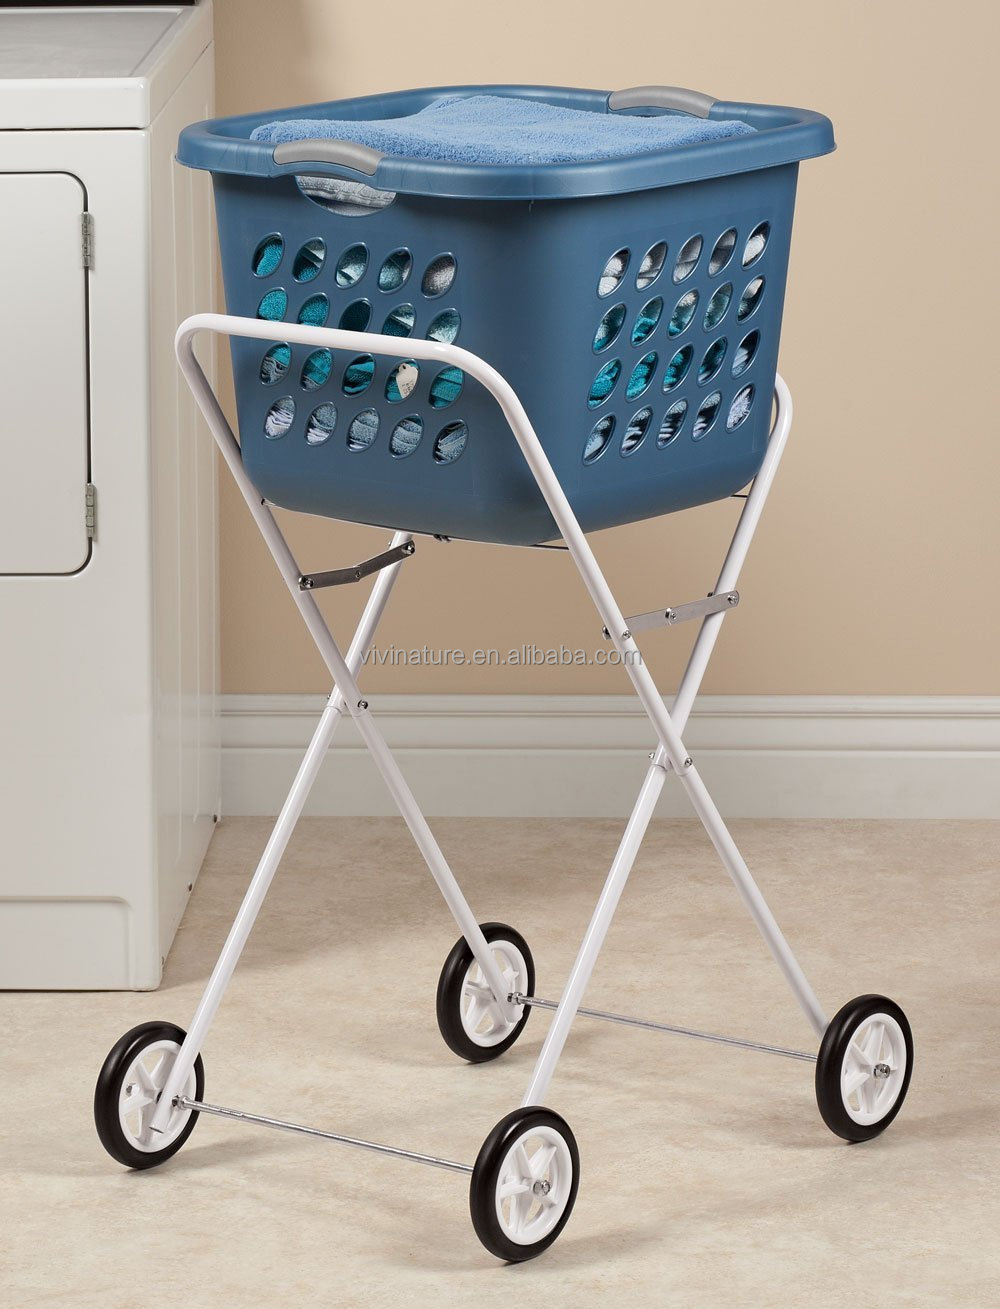 ... Trolley,Laundry Clothes Trolley,Laundry Hamper Trolley Product on